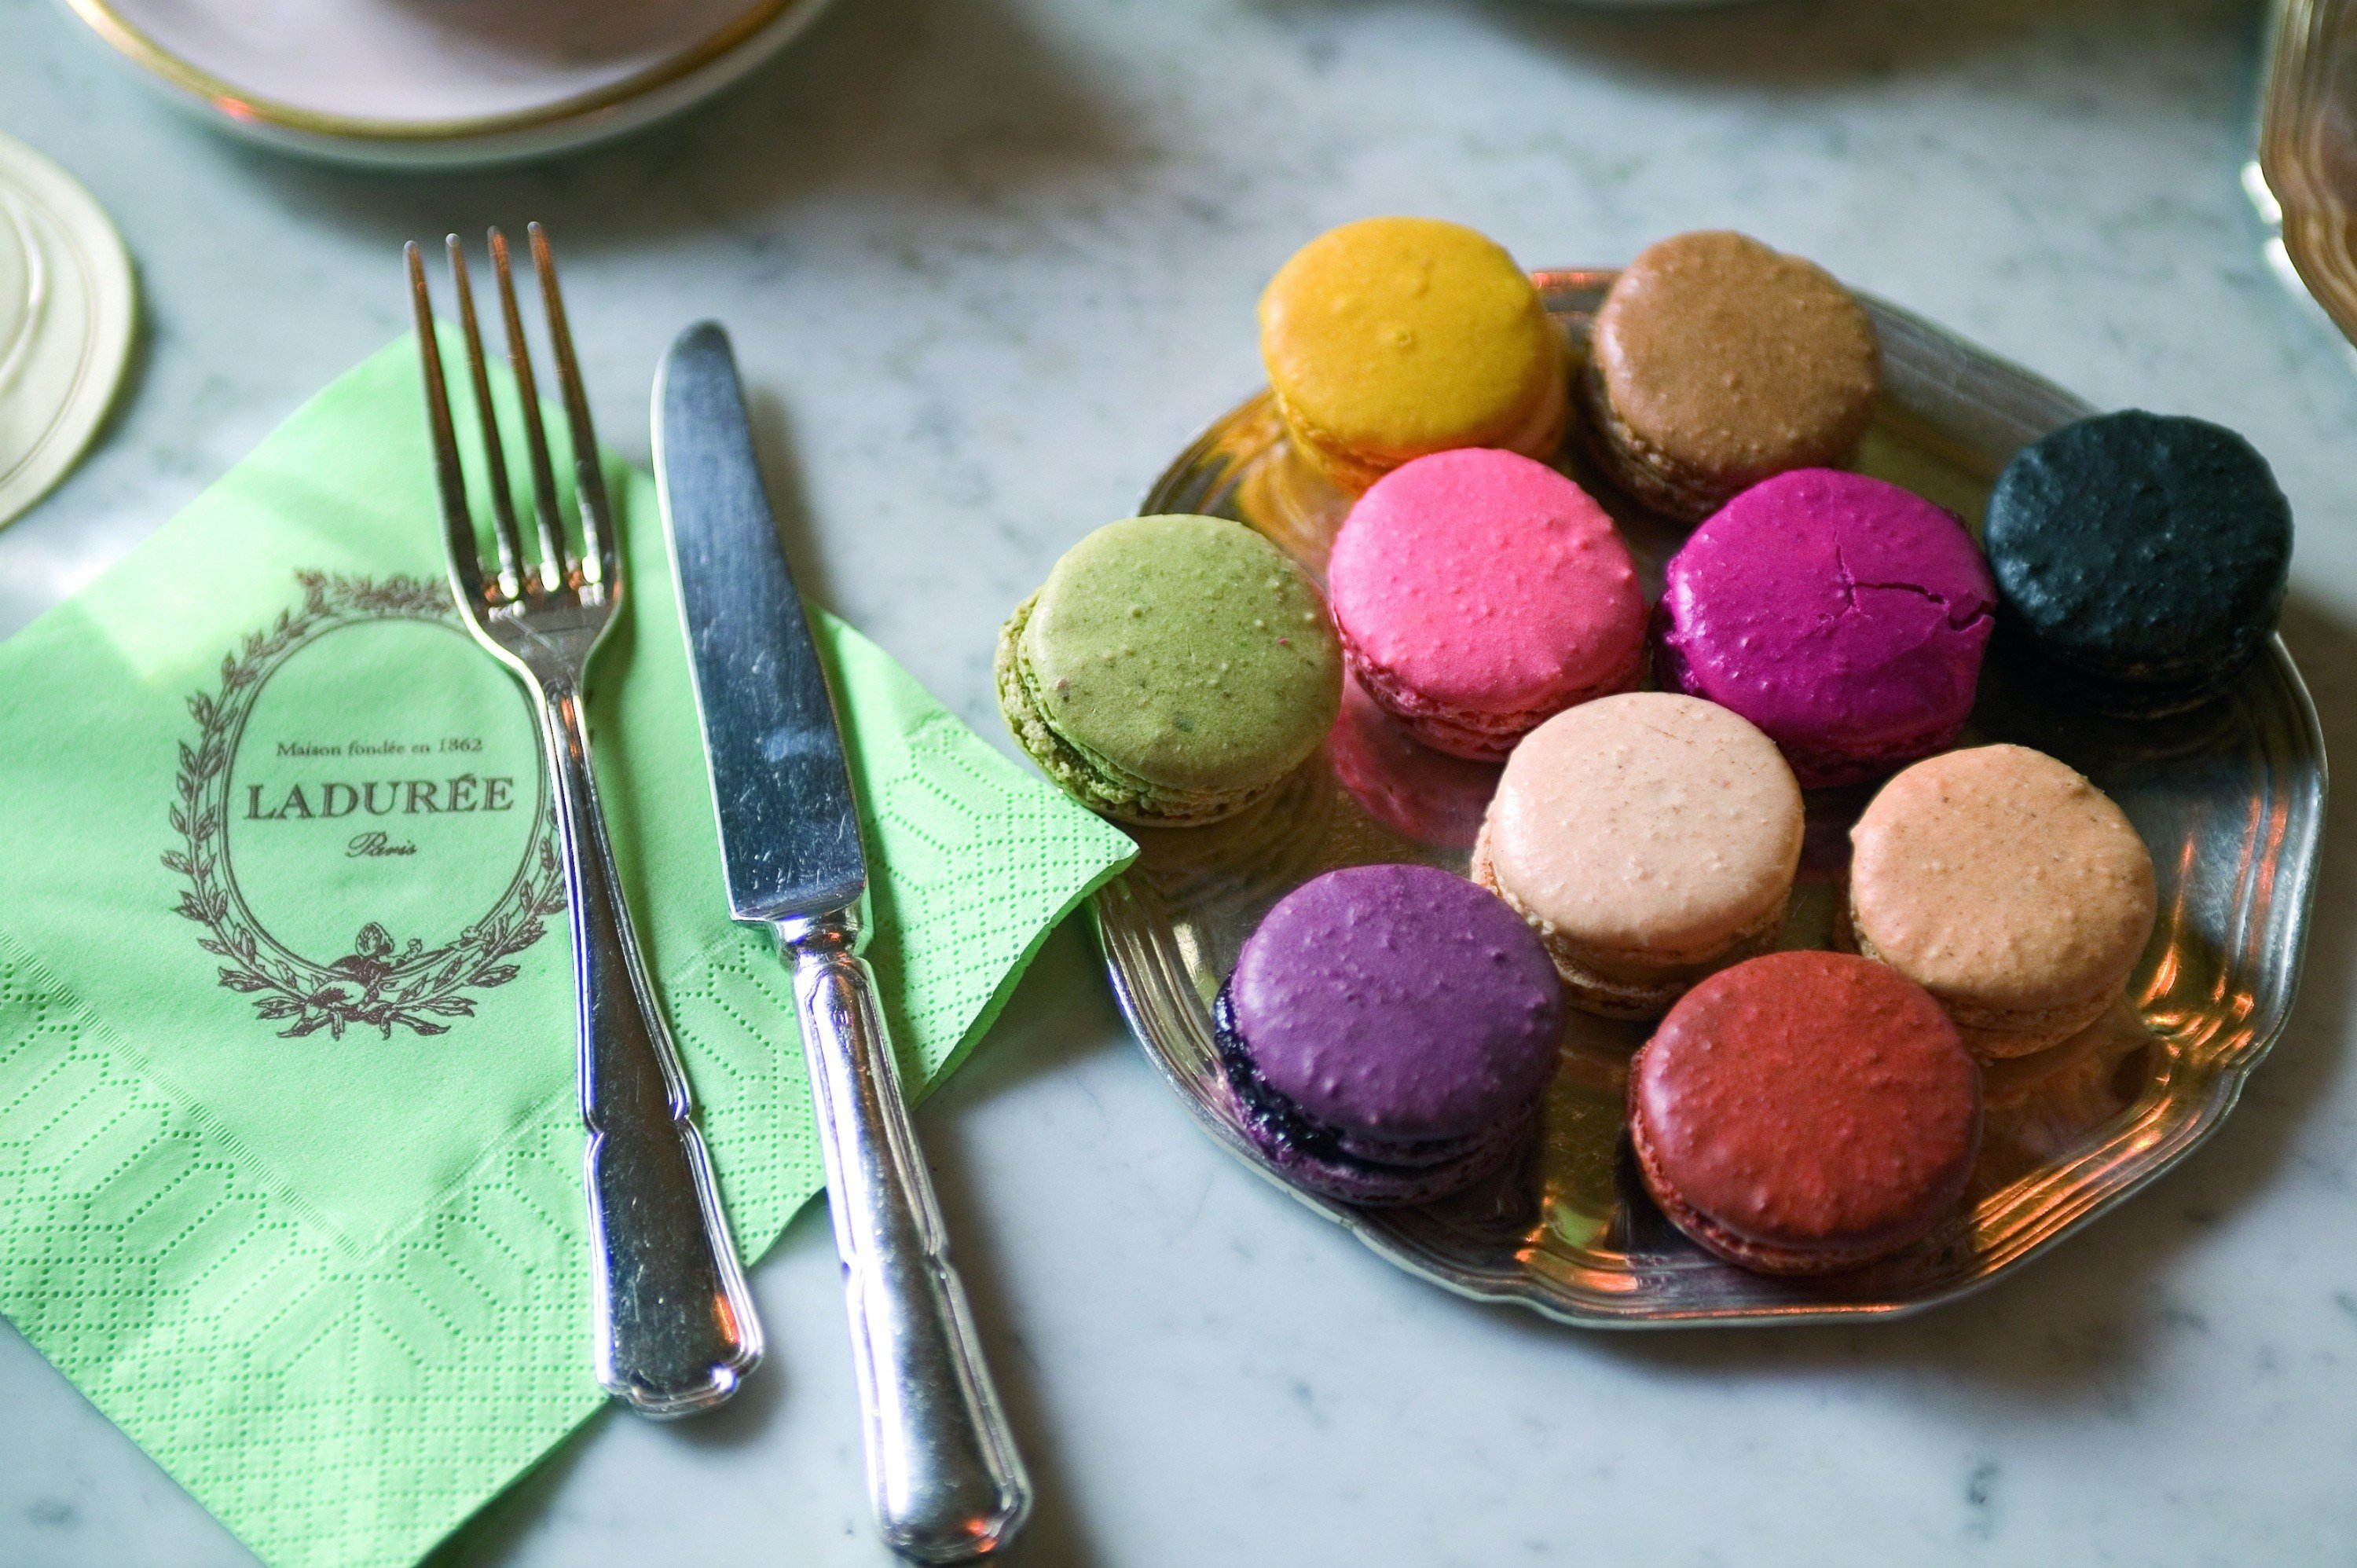 Reasons To Dine At This Ladur 233 E Tea Salon In Paris La